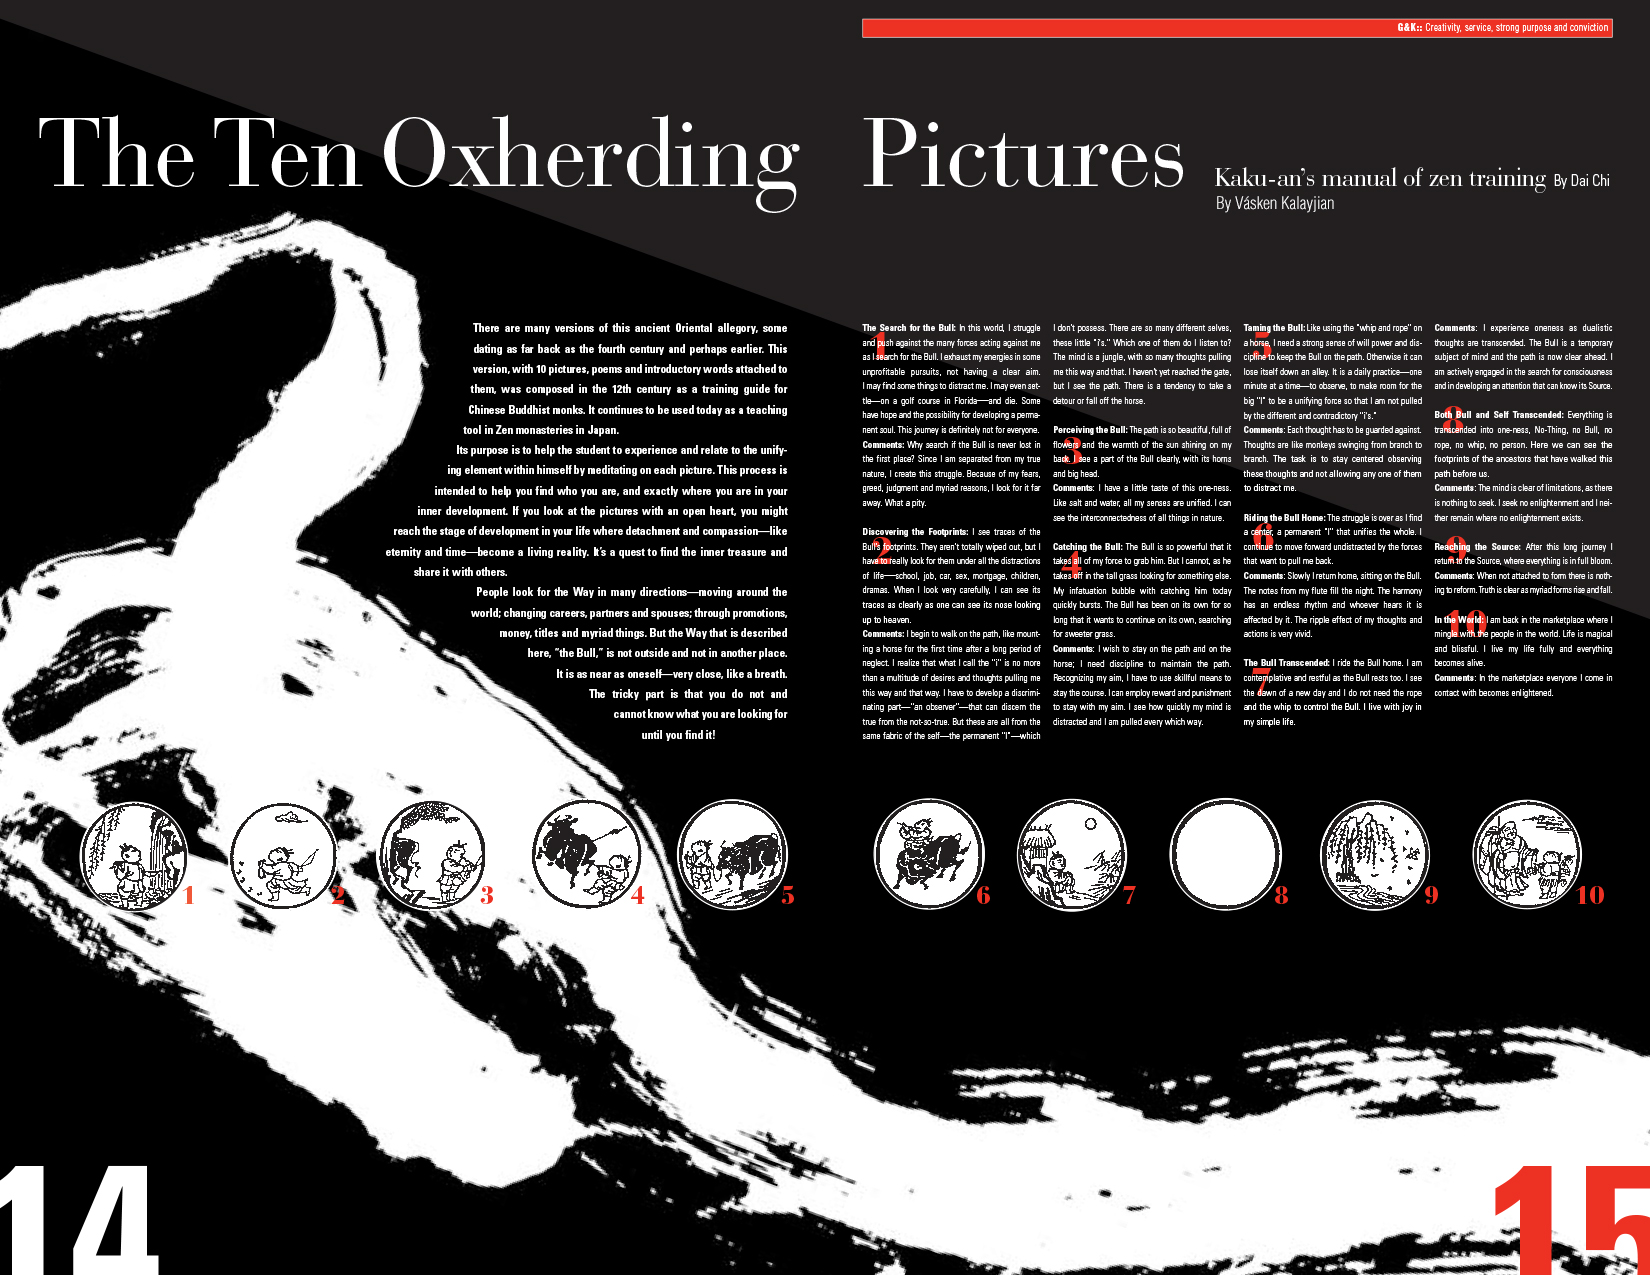 The Ten Oxherding Pictures Kaku-an's manual of zen training by Vasken Kalayjian